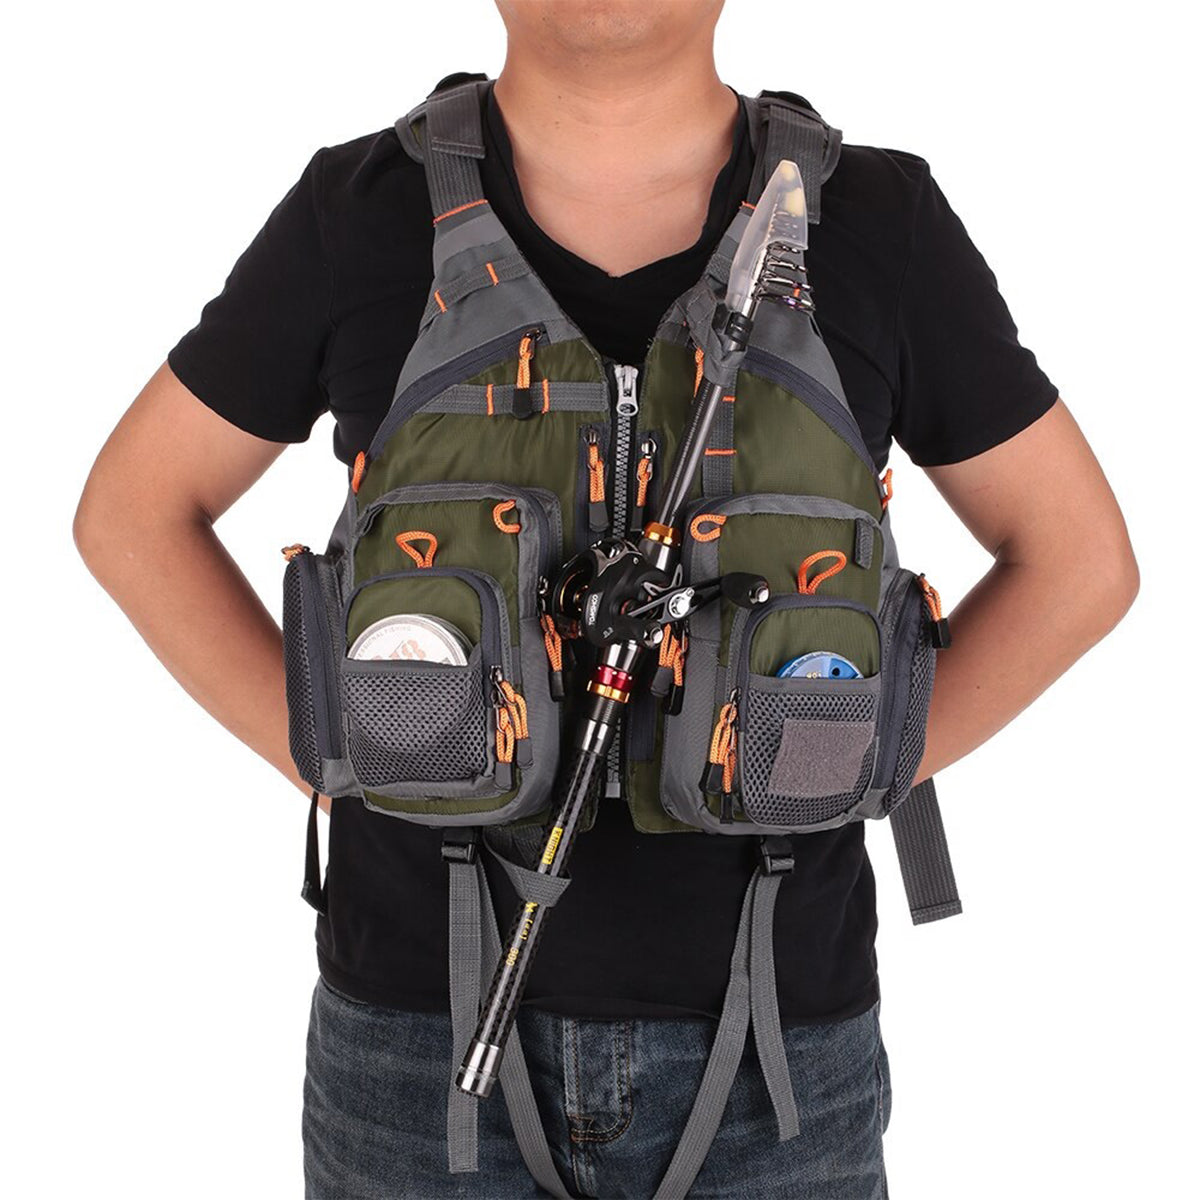 Men's Breathable Fishing PFD Survival Utility